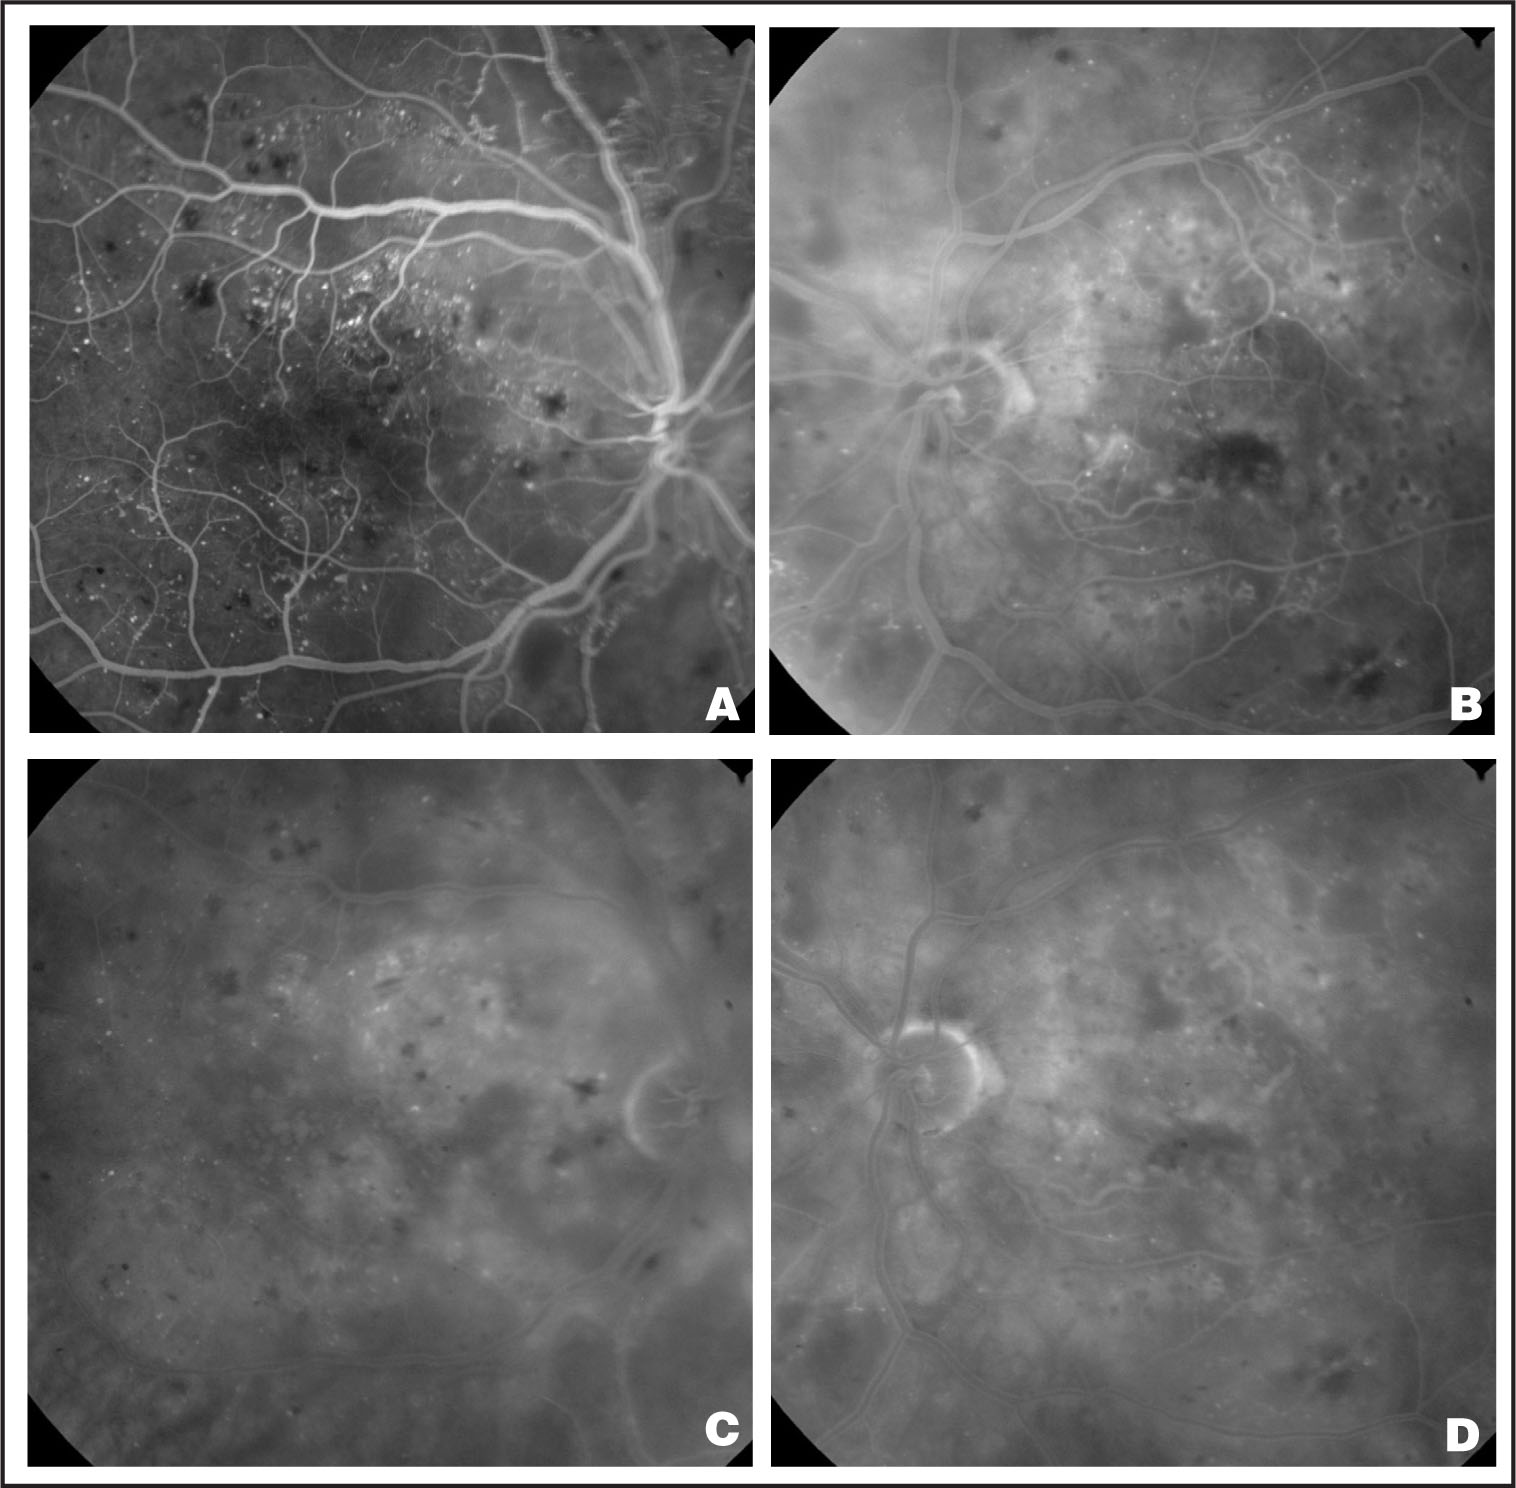 (A) Early-Frame Fluorescein Angiogram of the Right Eye in Case #1, Showing a Widened Foveal Avascular Zone. (B) Mid-Frame Fluorescein Angiogram of the Left Eye, Indicating a Widened Foveal Avascular Zone as Well as Early Diffuse Dye Leakage. (C and D) Late-Frame Fluorescein Angiograms of the Right Eye and Left Eye Respectively, Revealing Diffuse Dye Leakage.